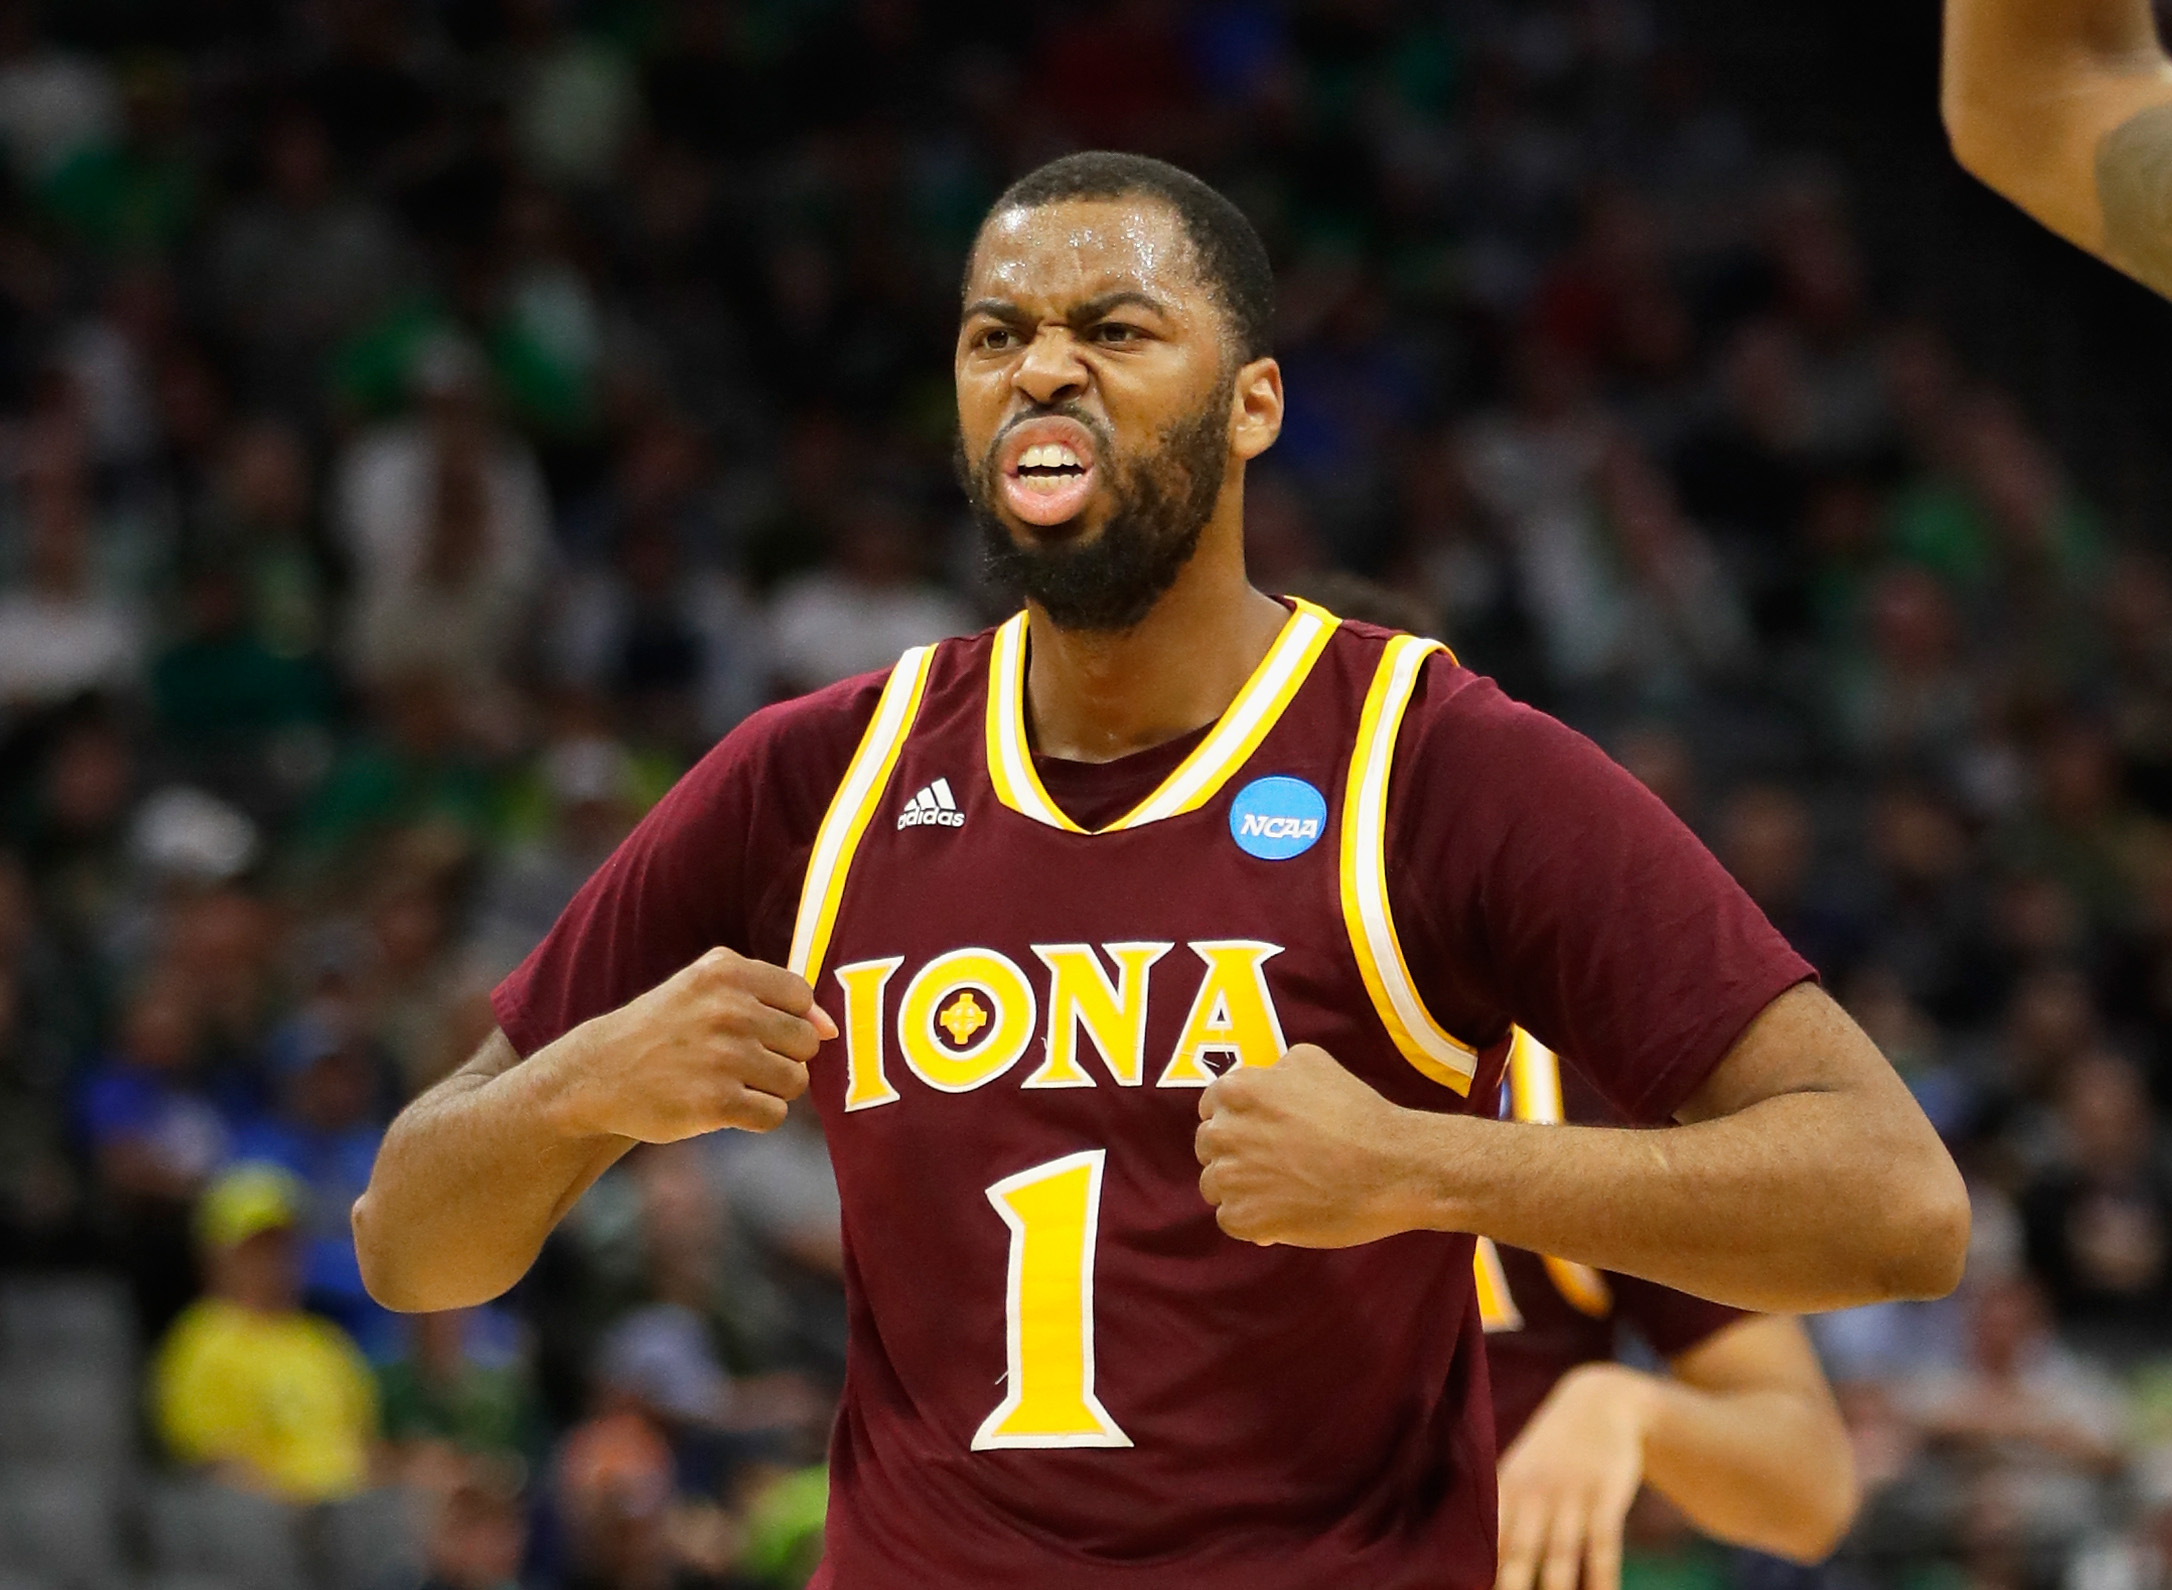 Cavs summer league 5 players who have a shot to make Cavs roster